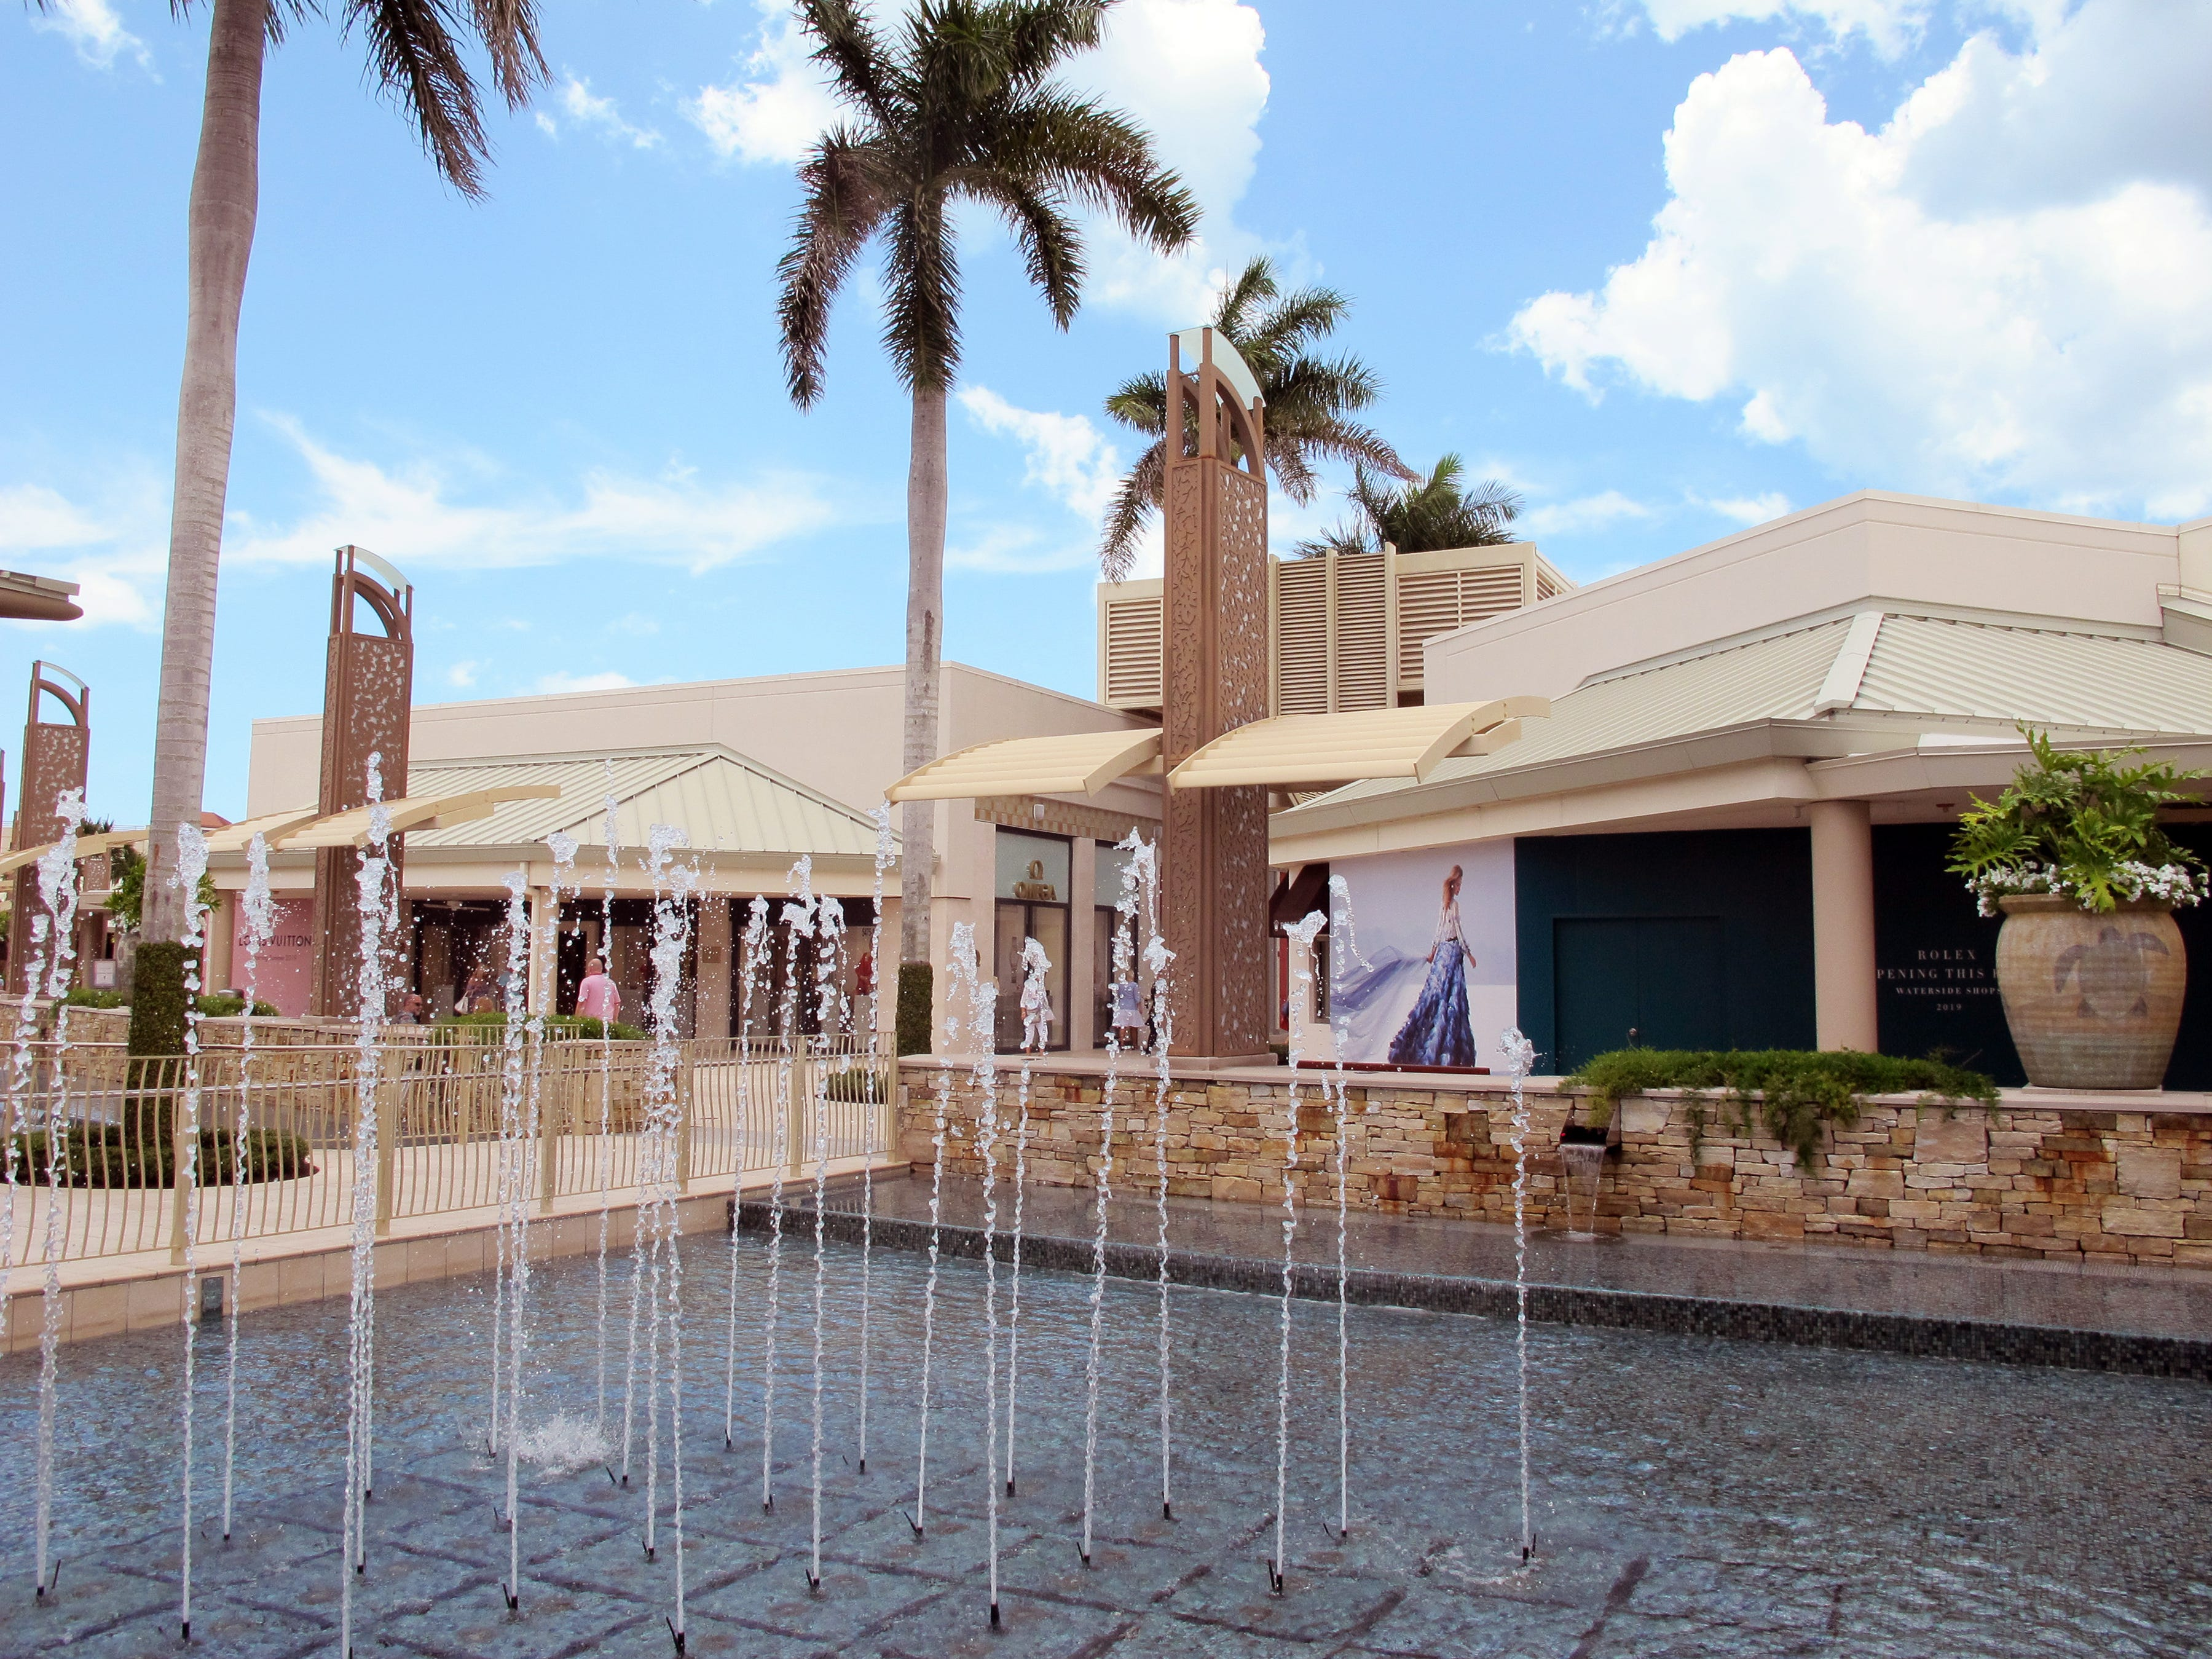 Many luxury brands are planning to launch new stores this year at Waterside Shops in Naples.